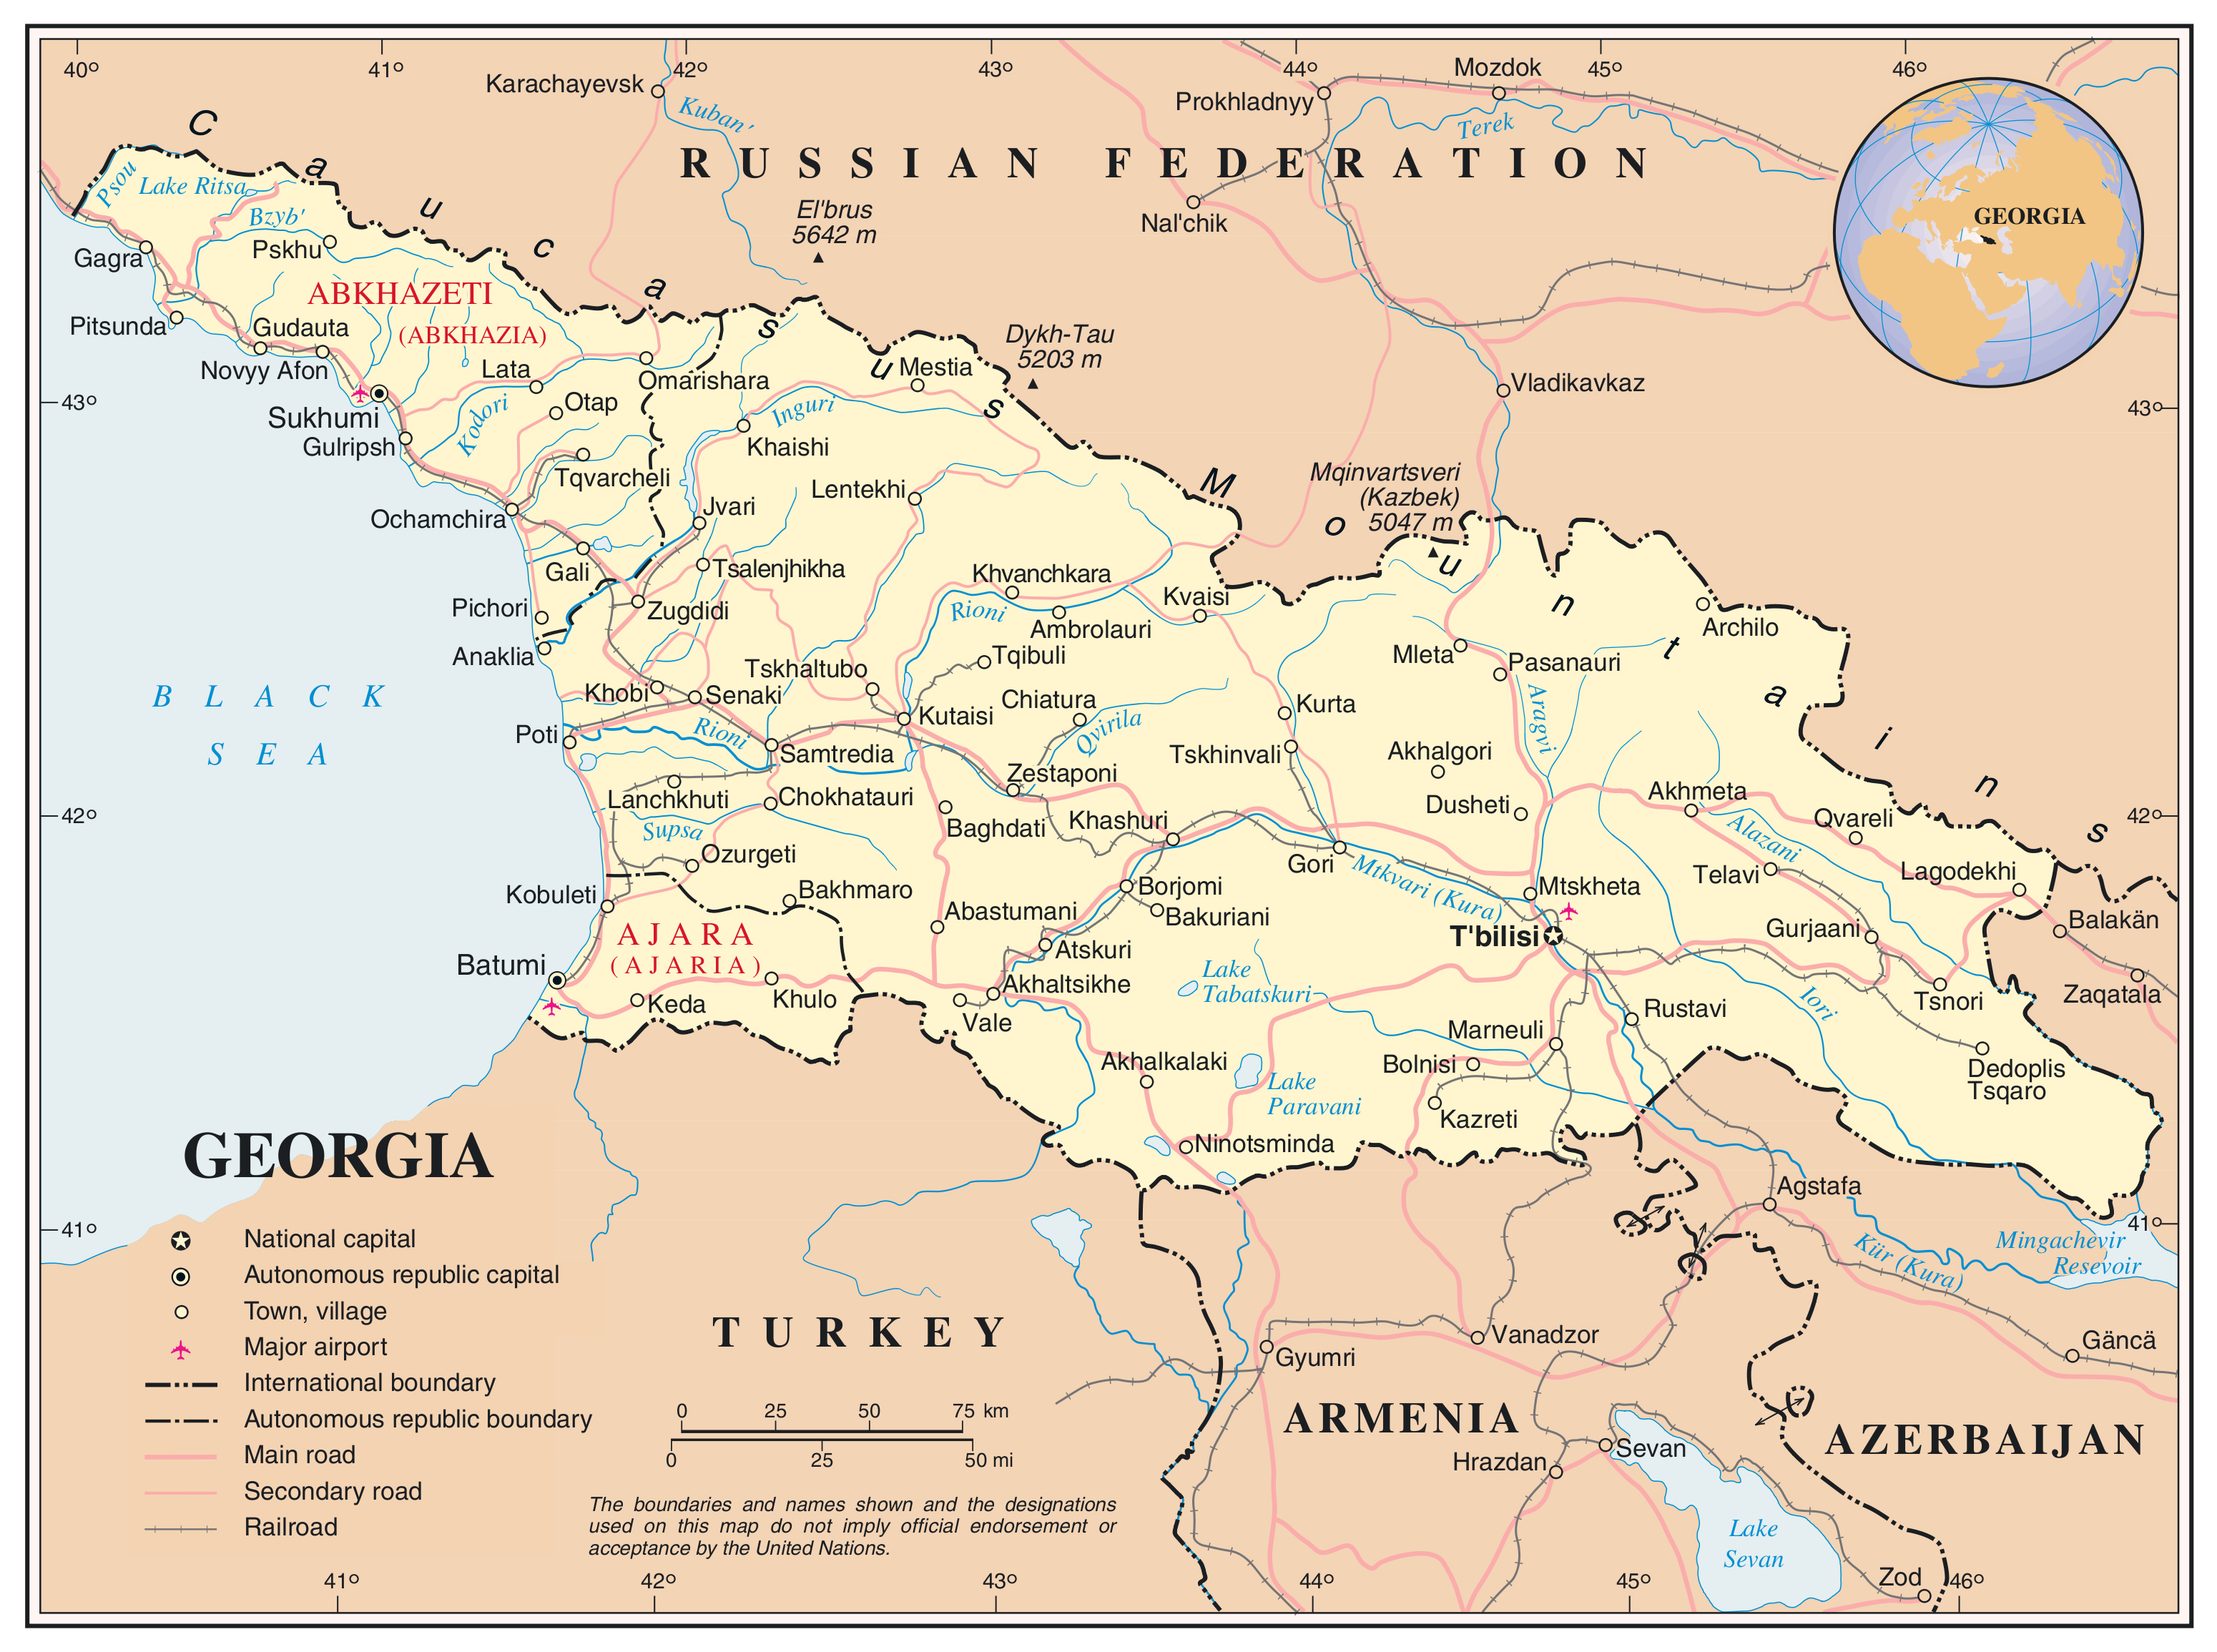 Large Detailed Political Map Of Georgia With Roads Railroads - Nalchik map